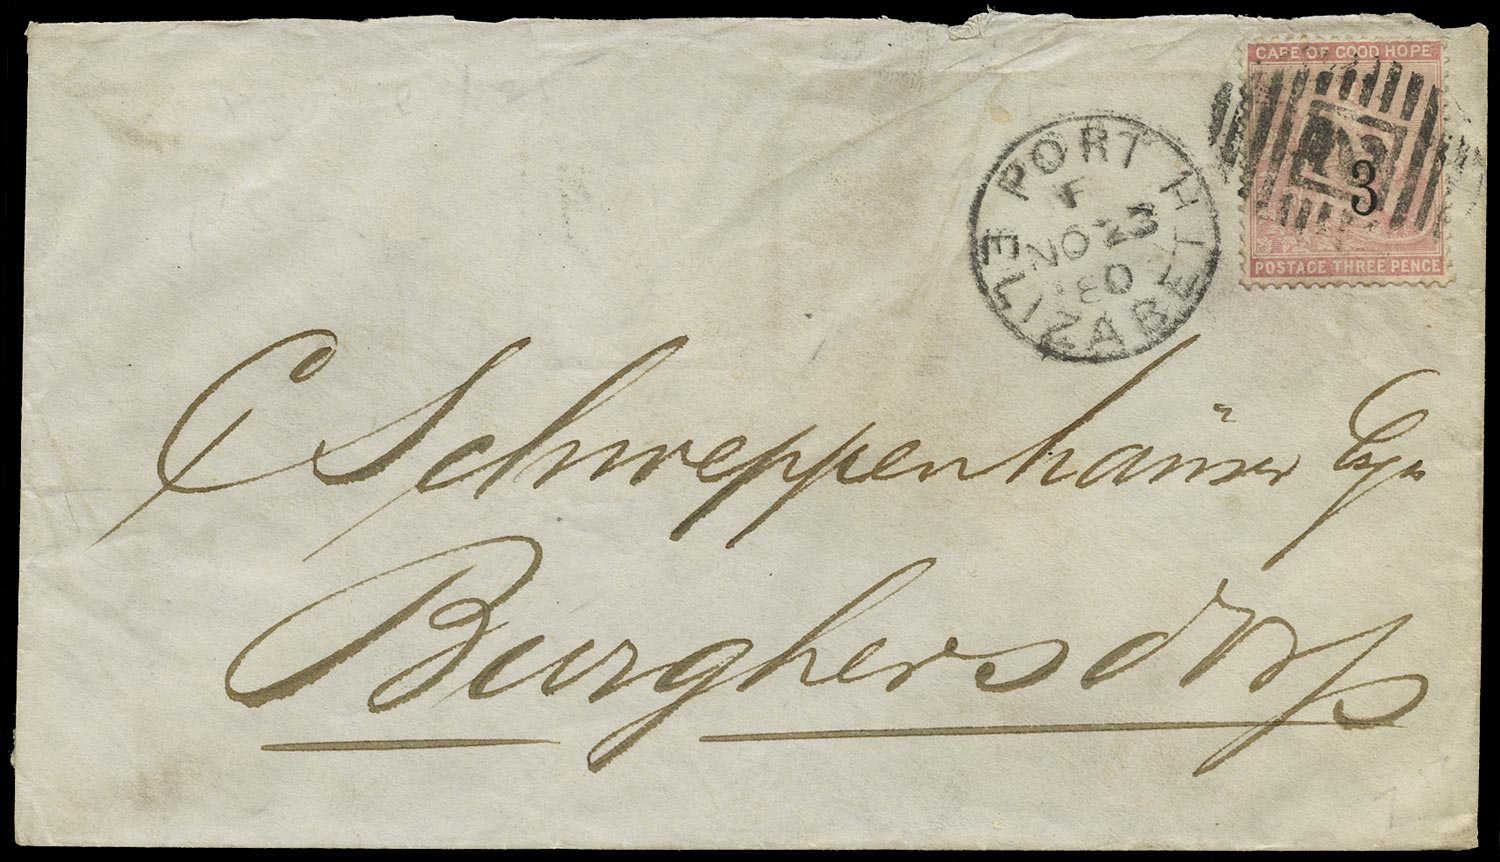 CAPE OF GOOD HOPE 1880  SG38 Cover from Port Elizabeth to Burghersdorp